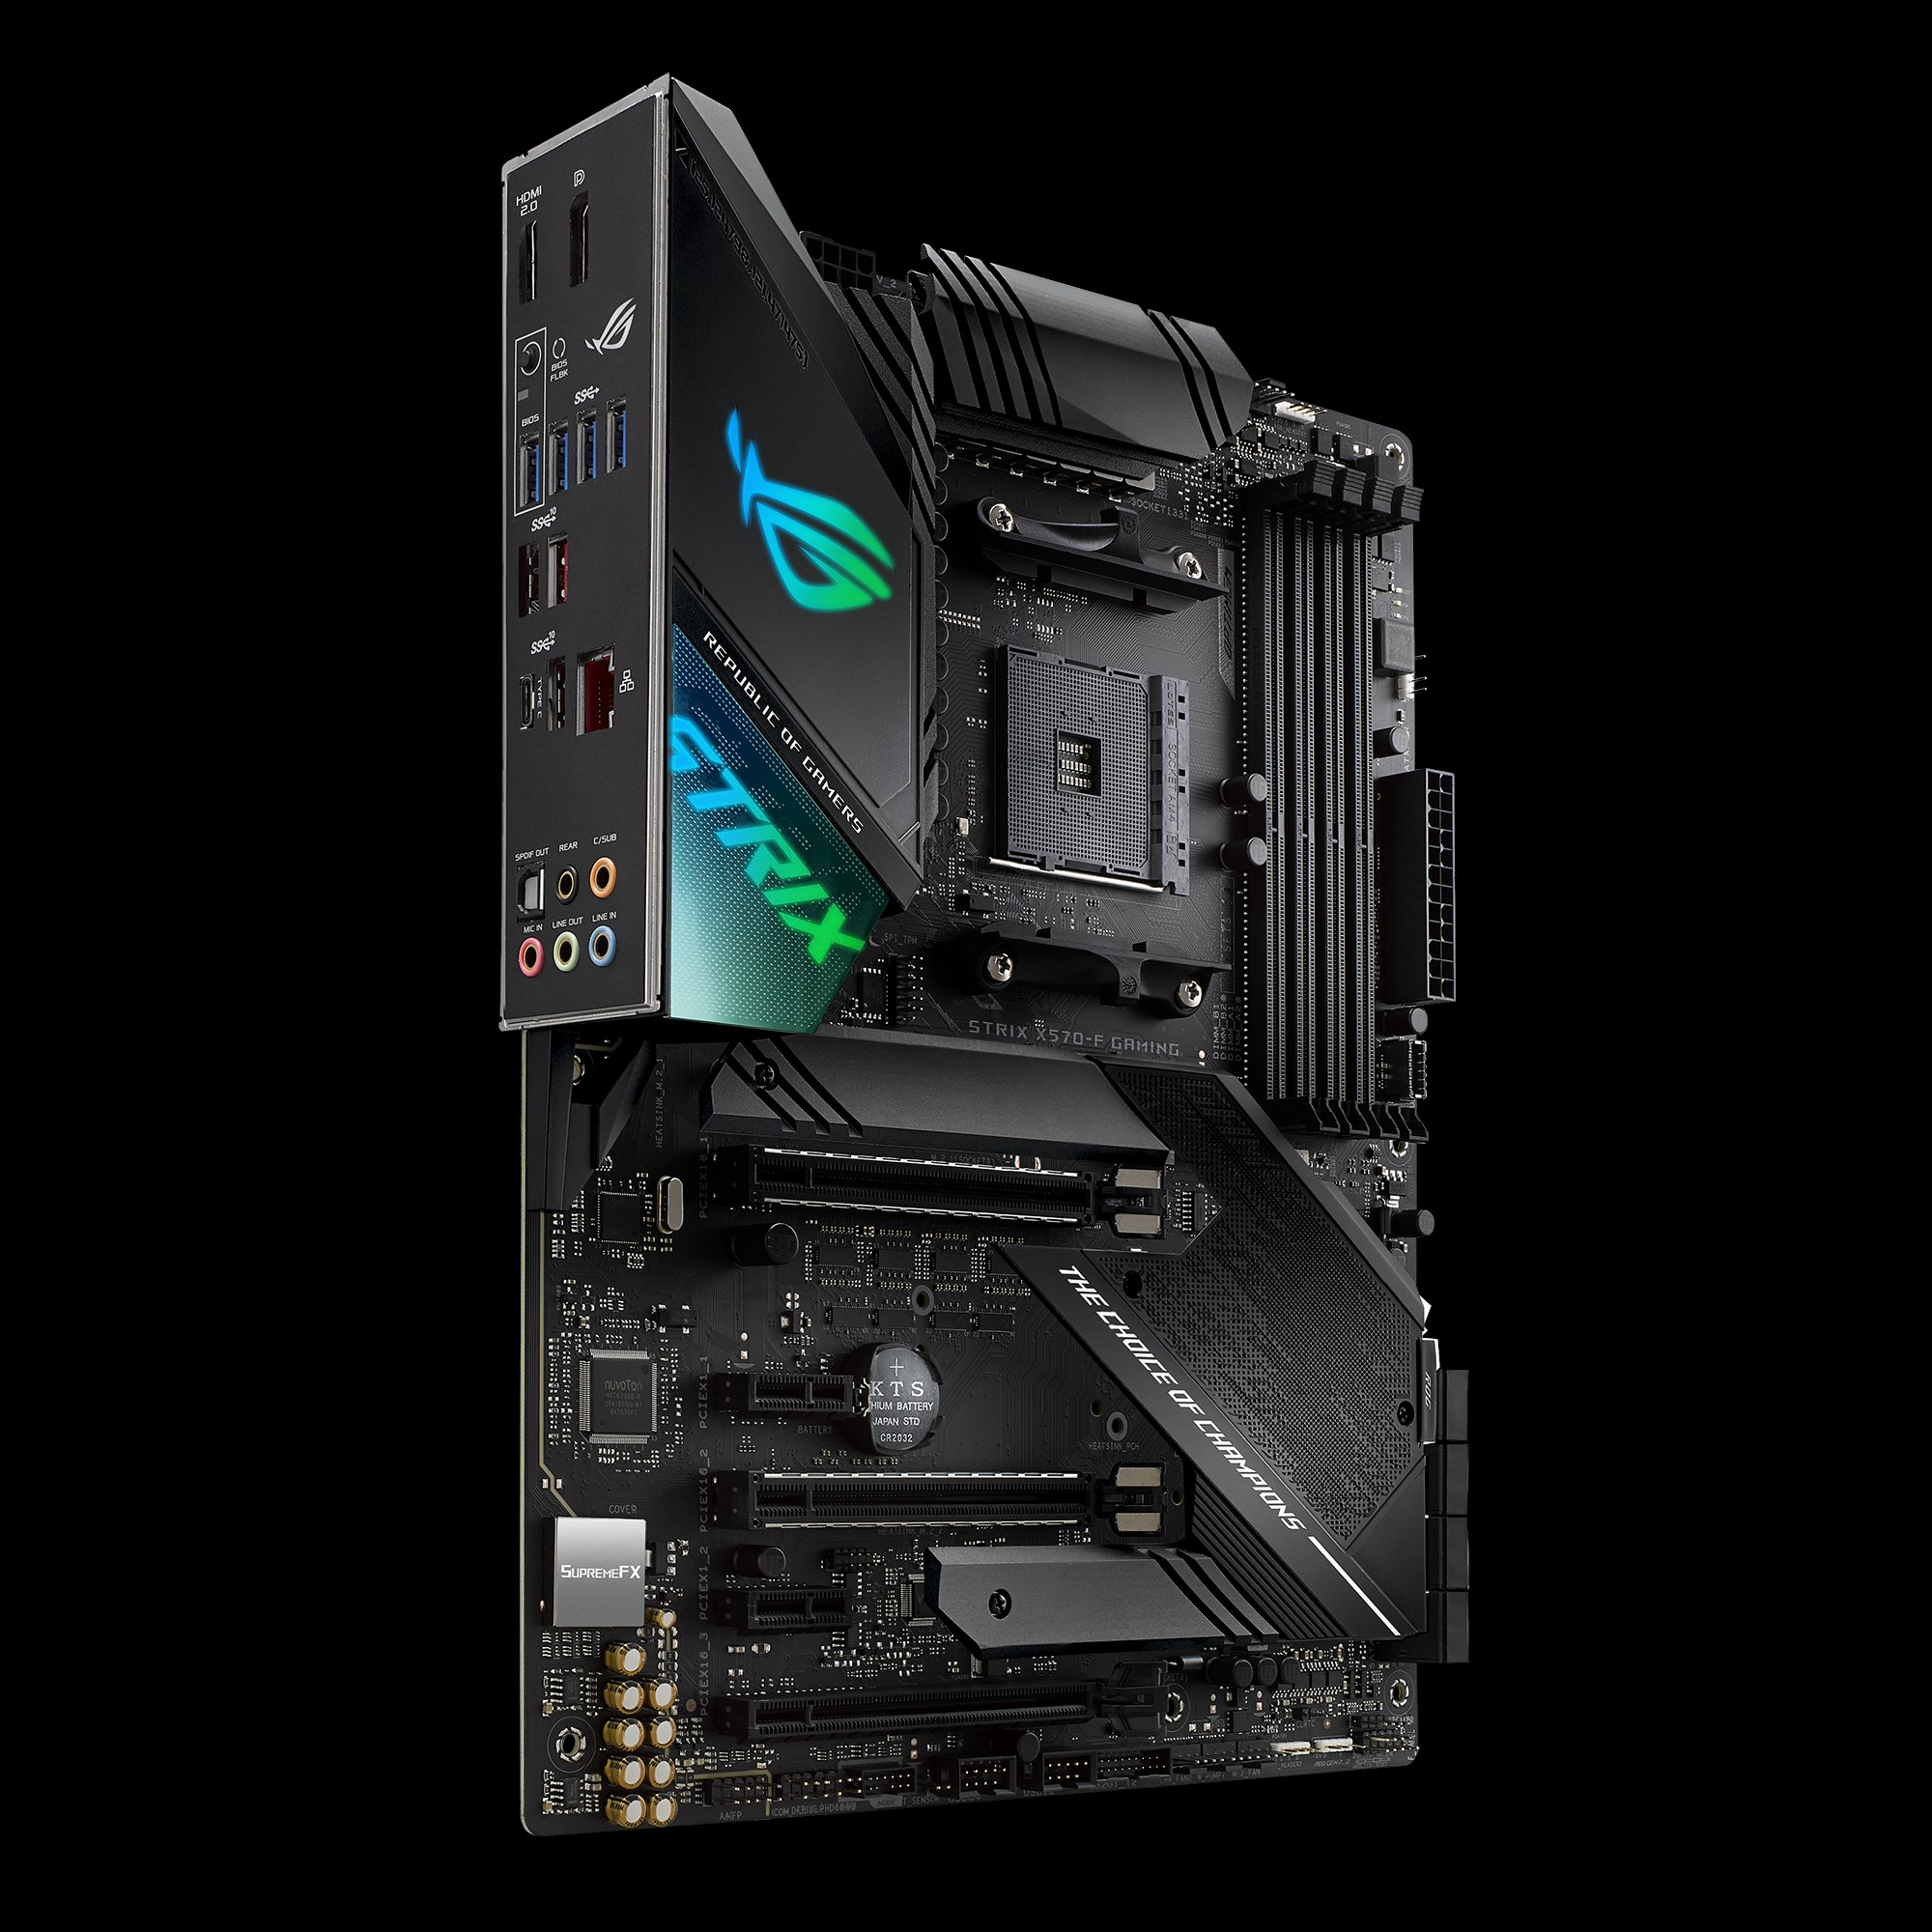 Asus Rog Strix X570 F Gaming Motherboard Specifications On Motherboarddb